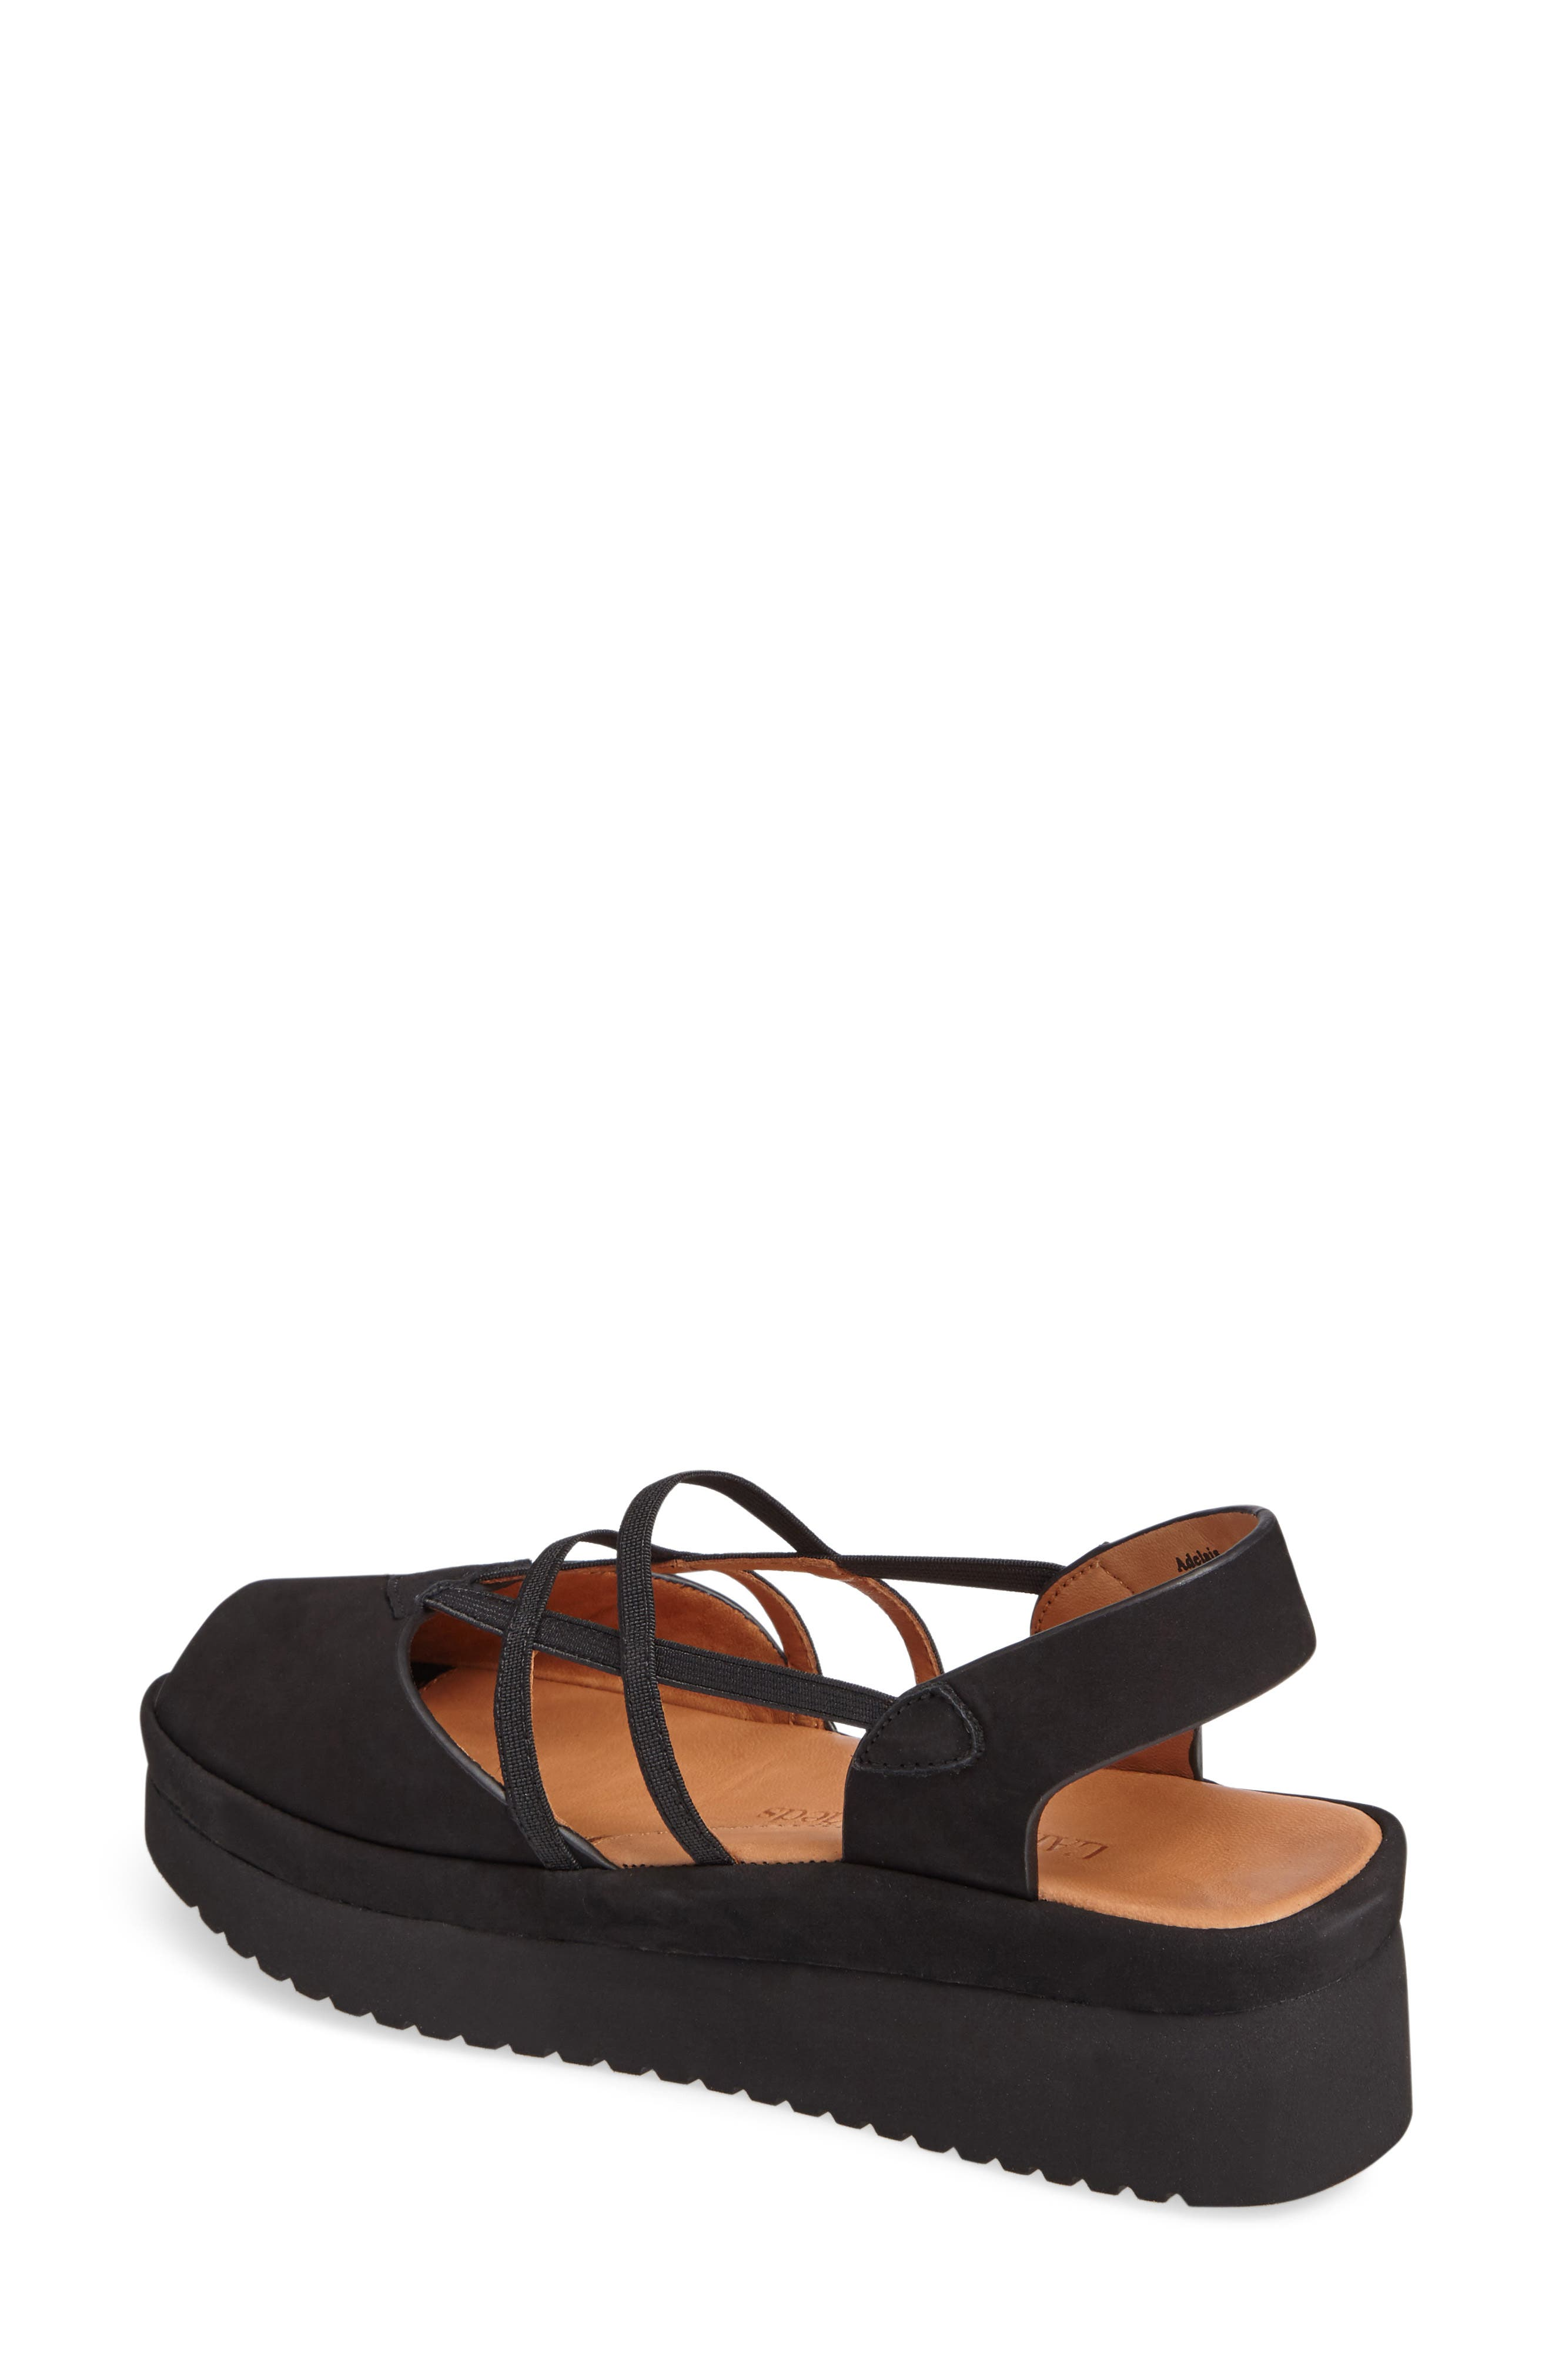 Adelais Platform Wedge Sandal,                             Alternate thumbnail 2, color,                             BLACK NUBUCK LEATHER